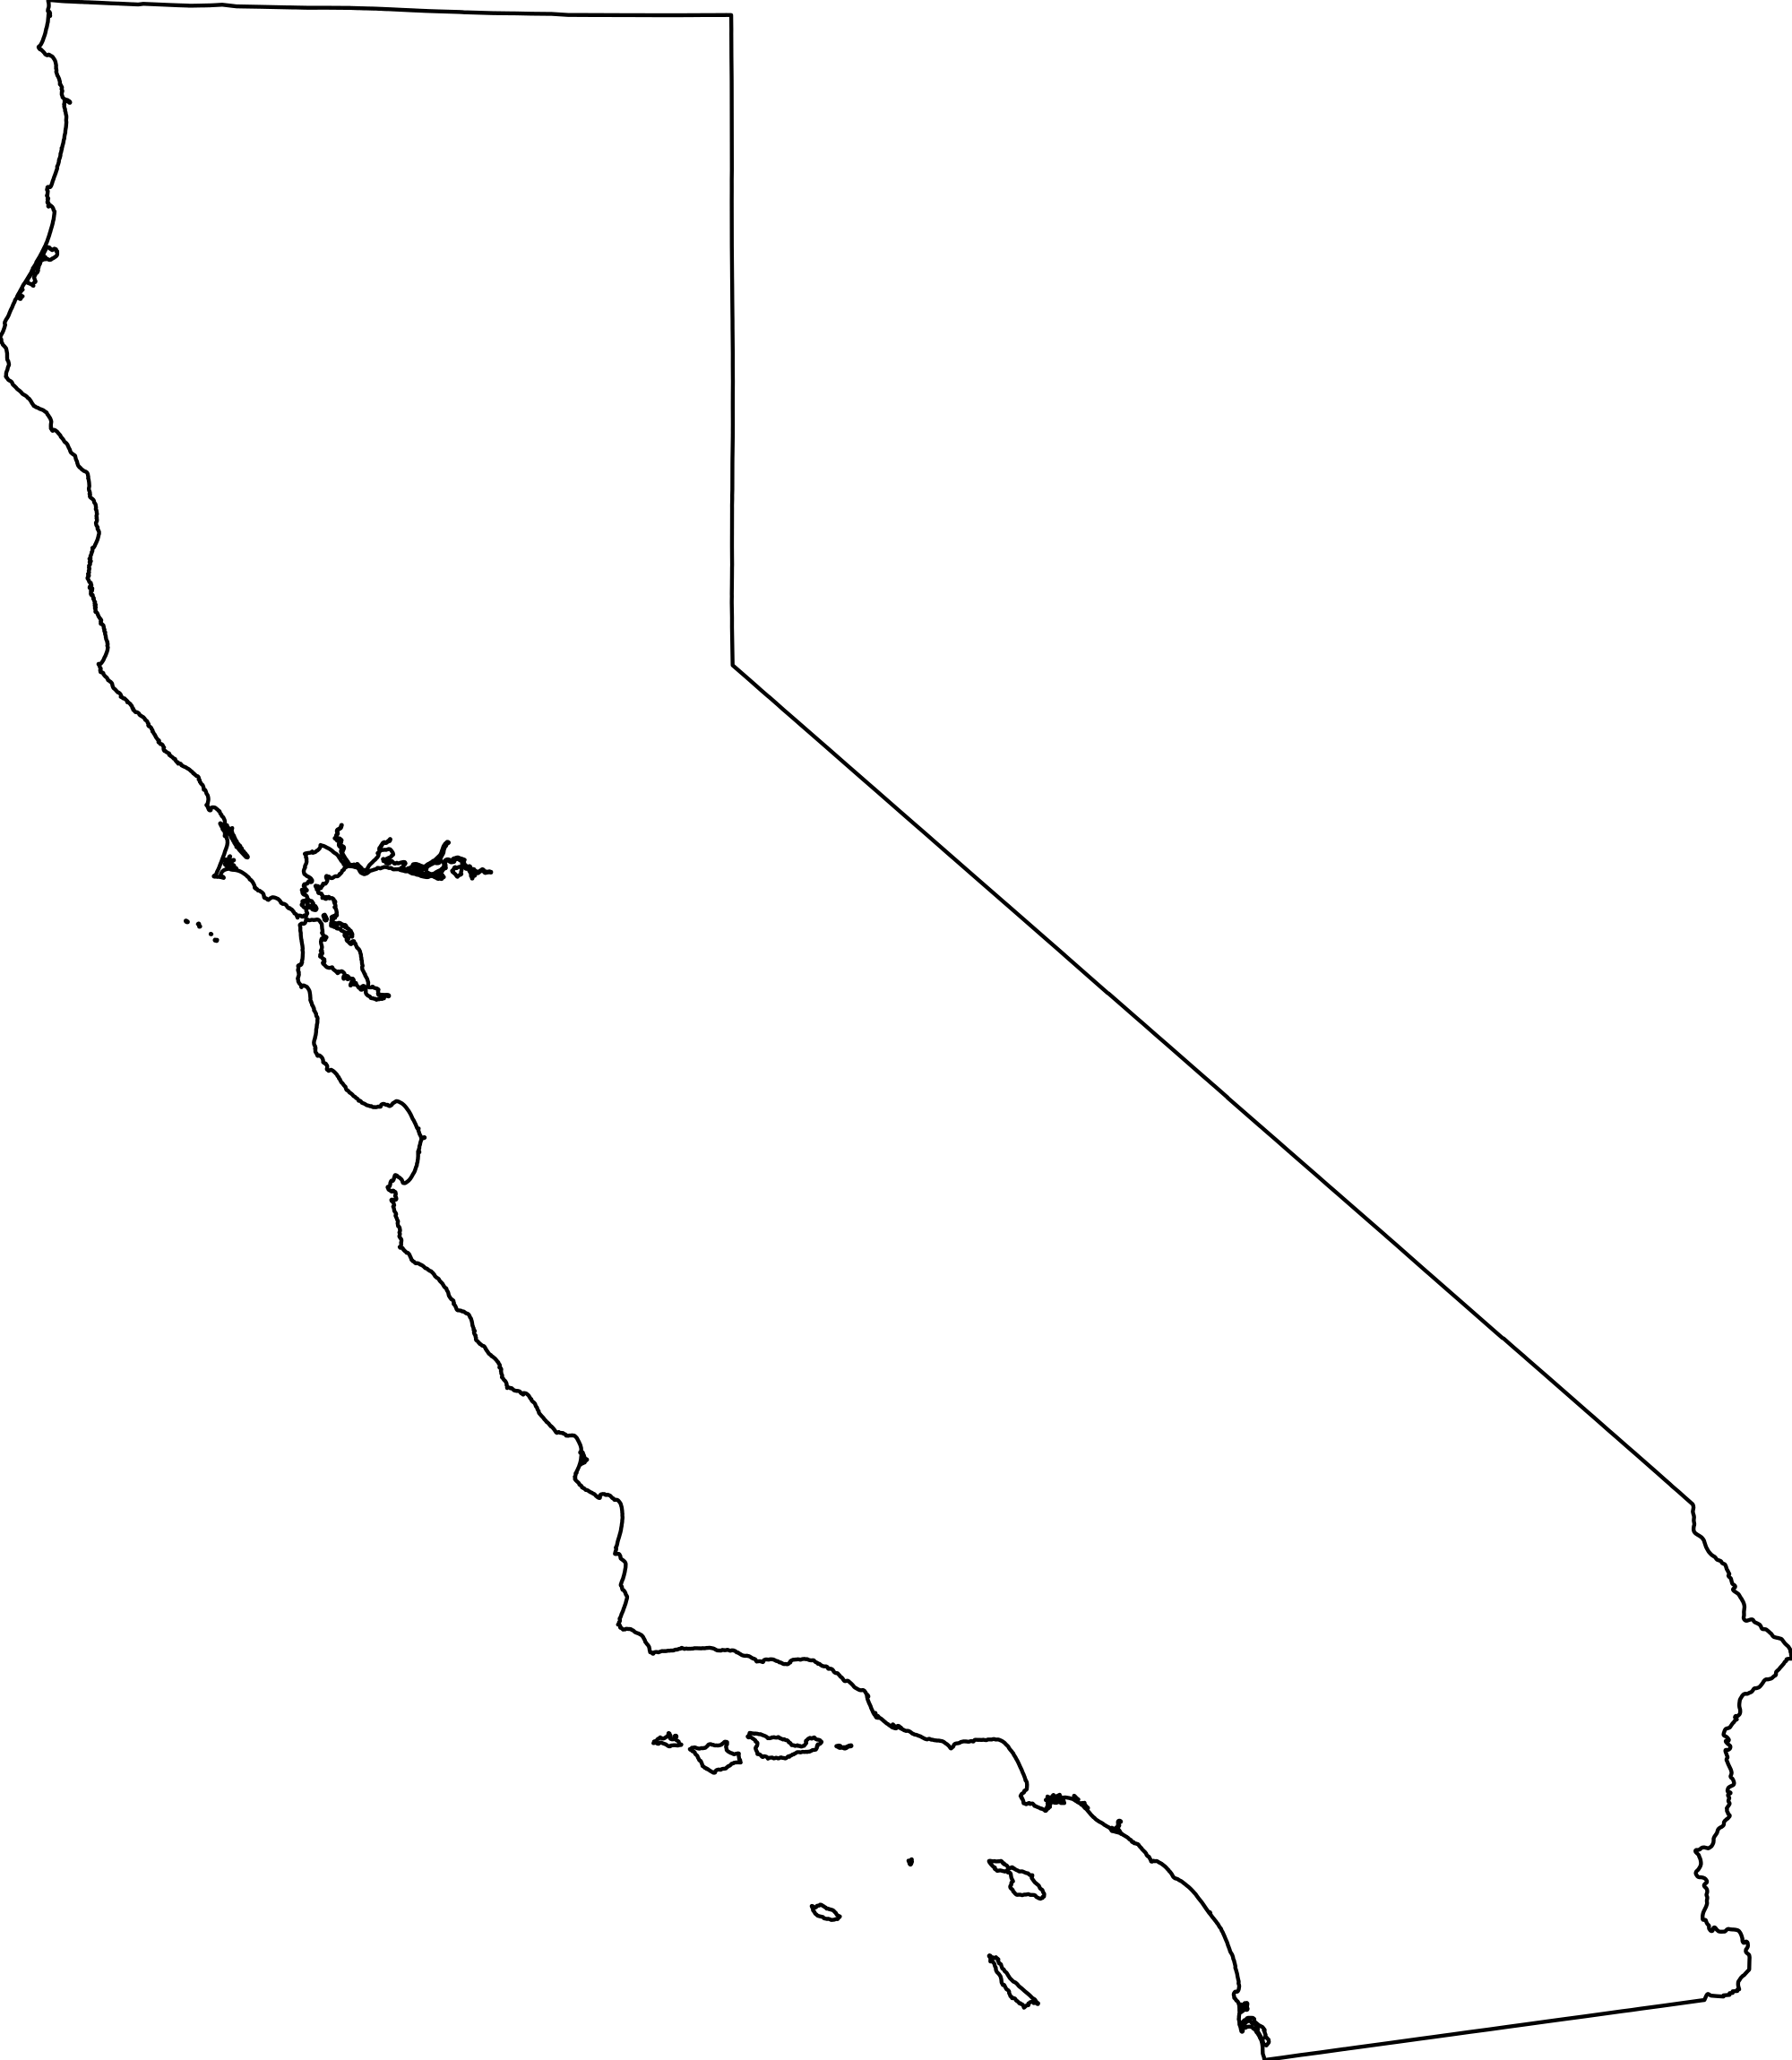 California map png transparent. Clipart road outline